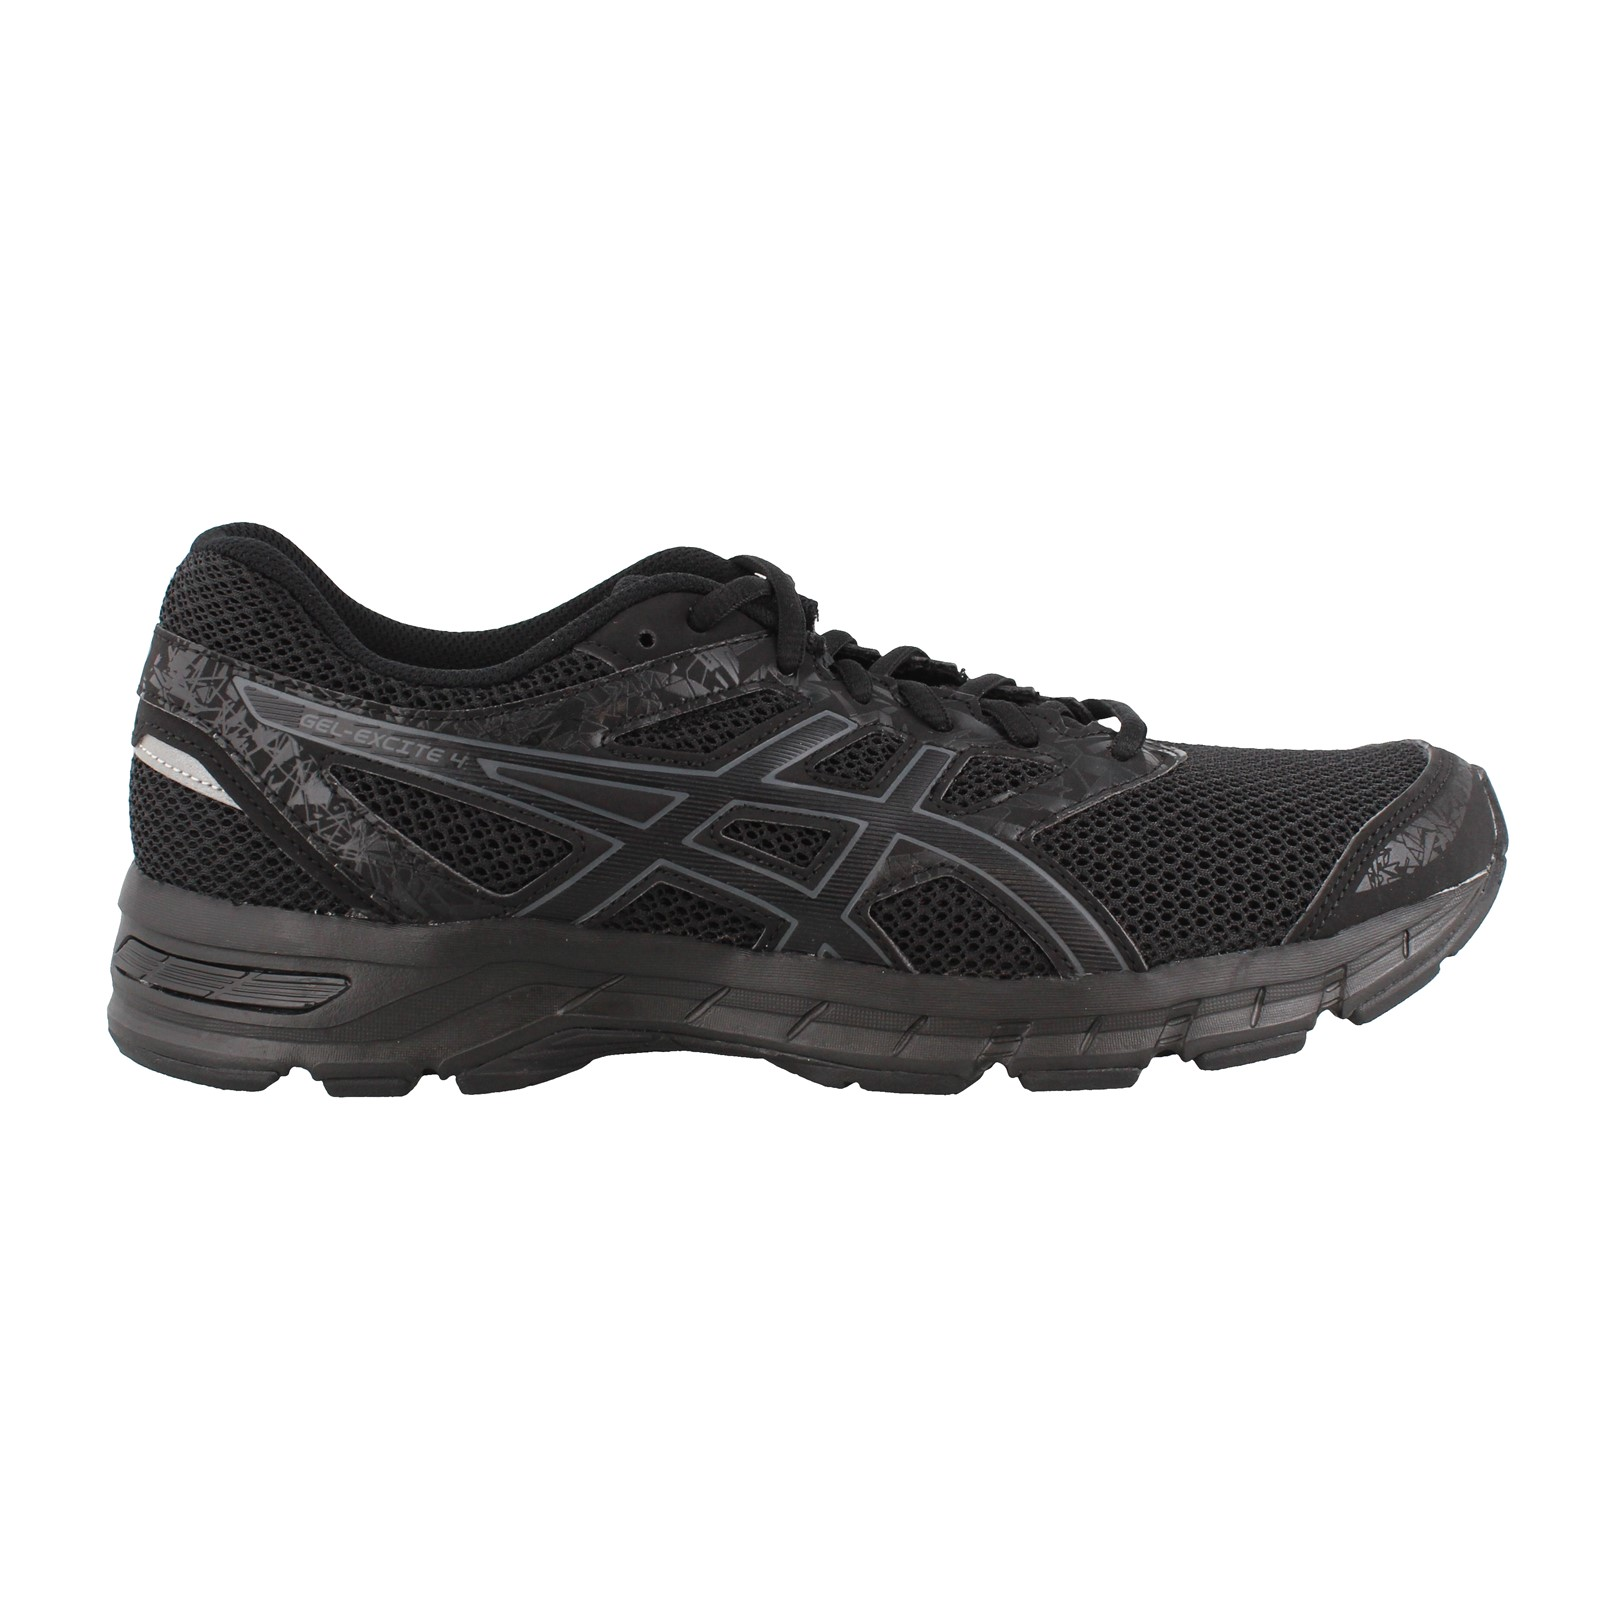 Sneaker 4 Running Excite Men's AsicsGel lcT1JK3F